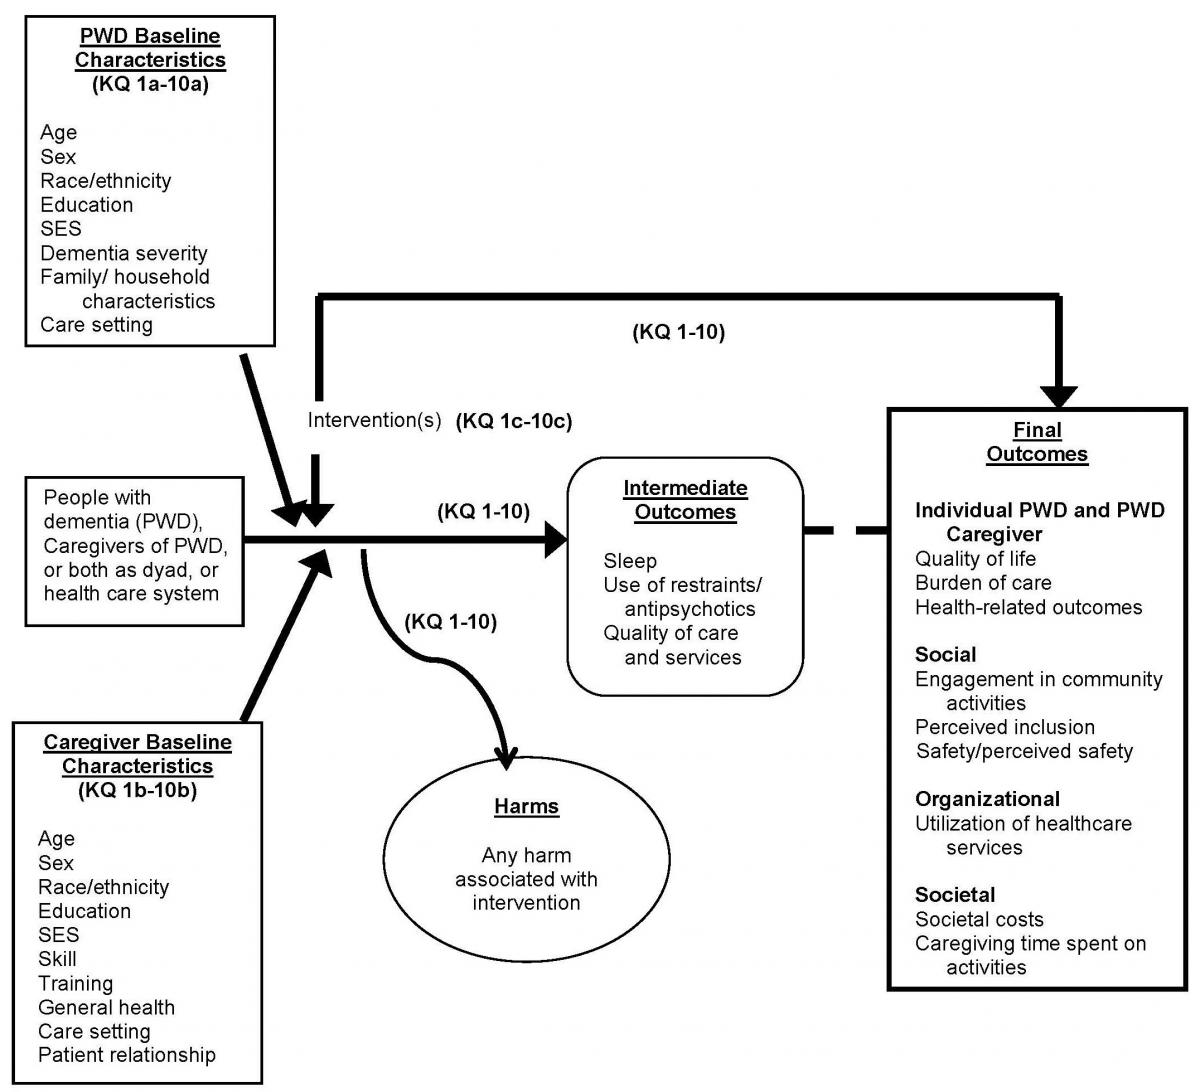 Figure 2 is the analytical framework describing the flow of people with dementia (PWD) and their caregivers through care intervention processes. PWD and caregivers receive nondrug care interventions leading to intermediate outcomes usch as improvements in sleep, quality of care and services, and use of restraints or antipsychotics for PWD. Interventions may have associated harms or unintended consequences. Final health outcomes for both caregivers and PWD include improvements in quality of life or other health outcomes. In addition PWD outcomes might include improvements in function, utilizaiton of healthcare services, and hospice outcomes such as concordance with preferred location of death. Outcomes may differ by PWD baseline characteristics (such as age, sex, education, or care setting) or caregiver baseline characteristics (such as age, sex, skill and training, general health, or patient relationship).